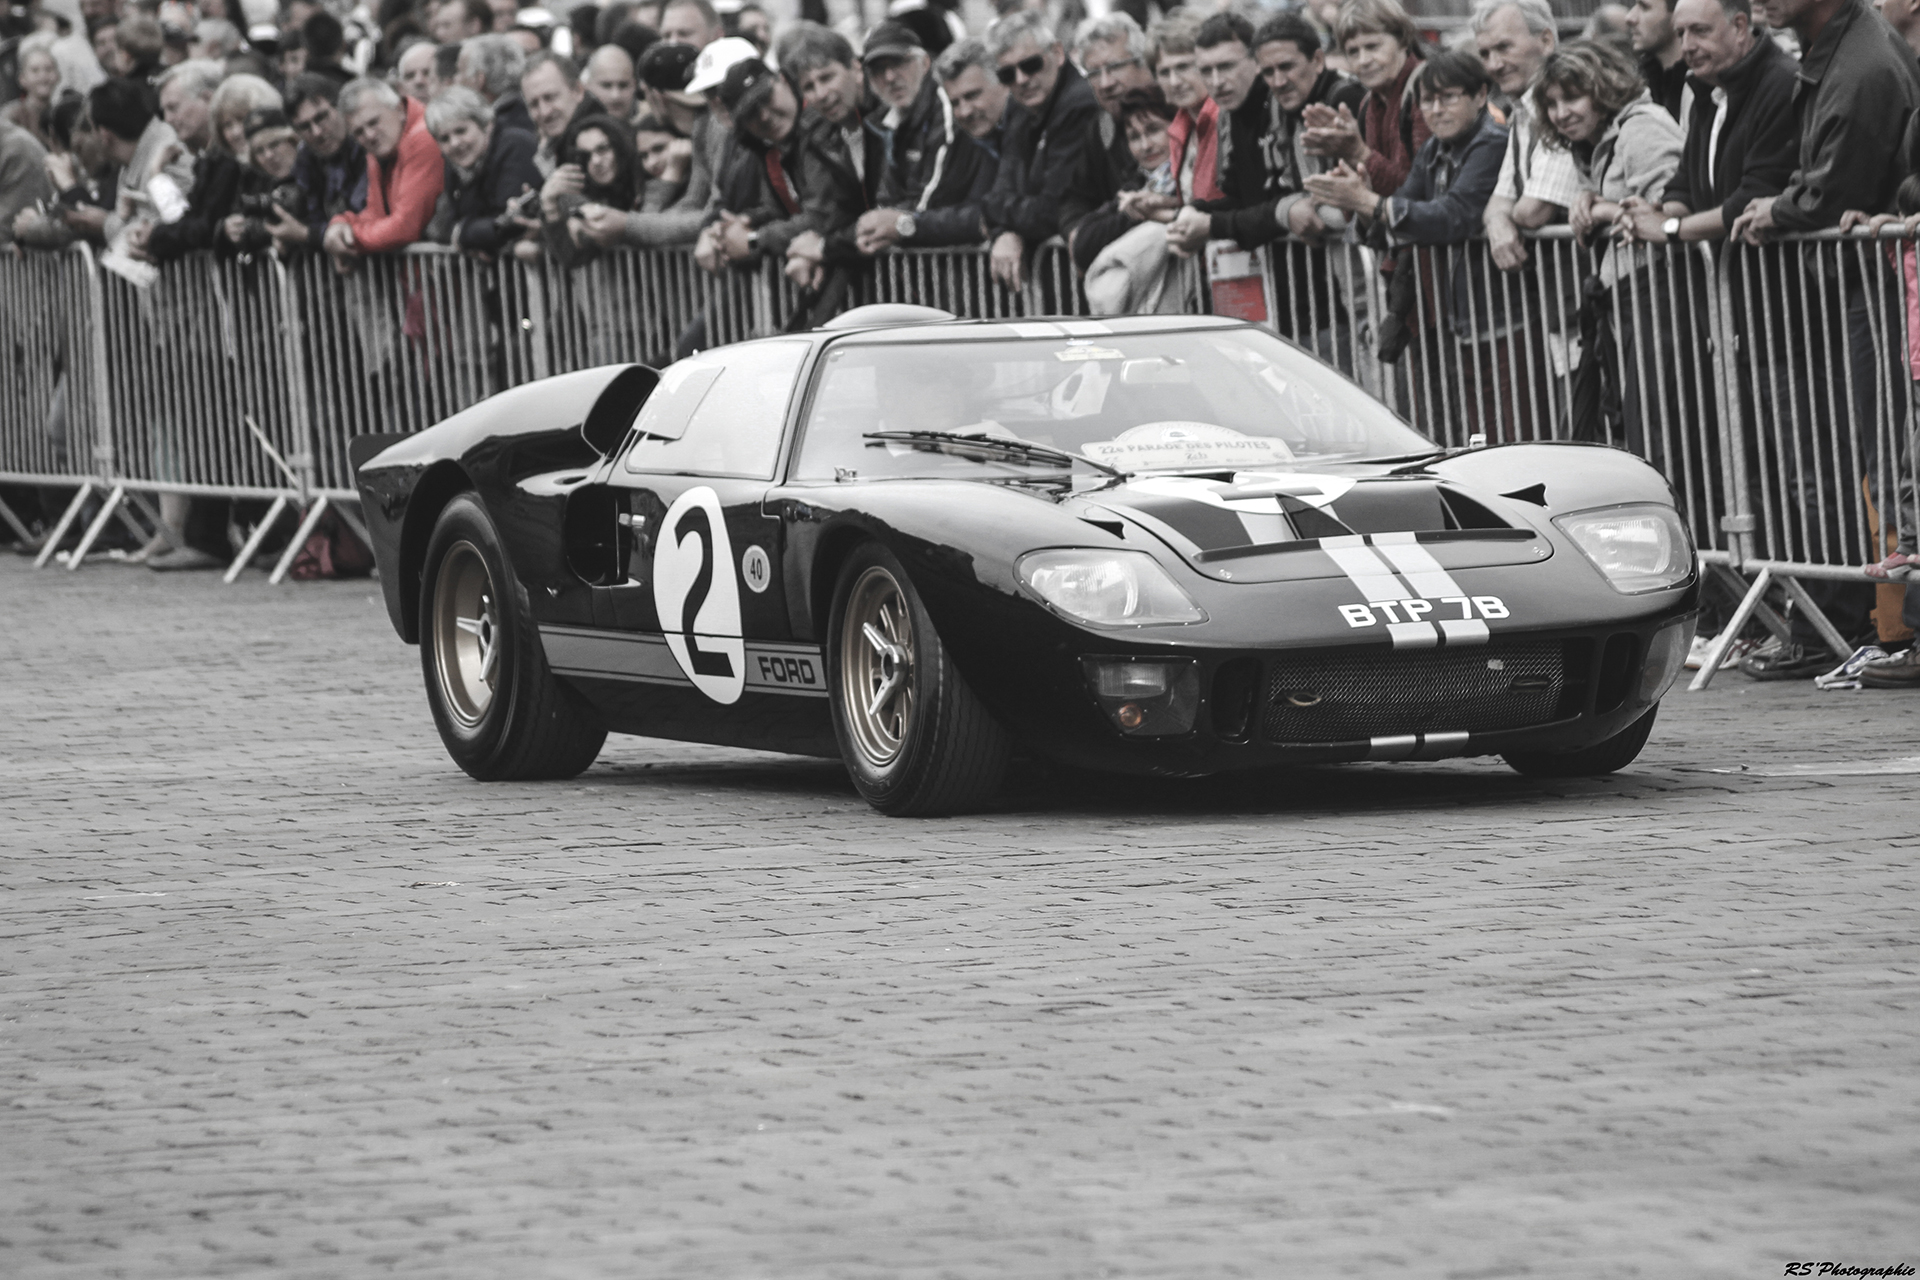 Ford GT40 mk2 1966 - Parade 2016 Le Mans 24 - Arnaud Demasier RS Photographie